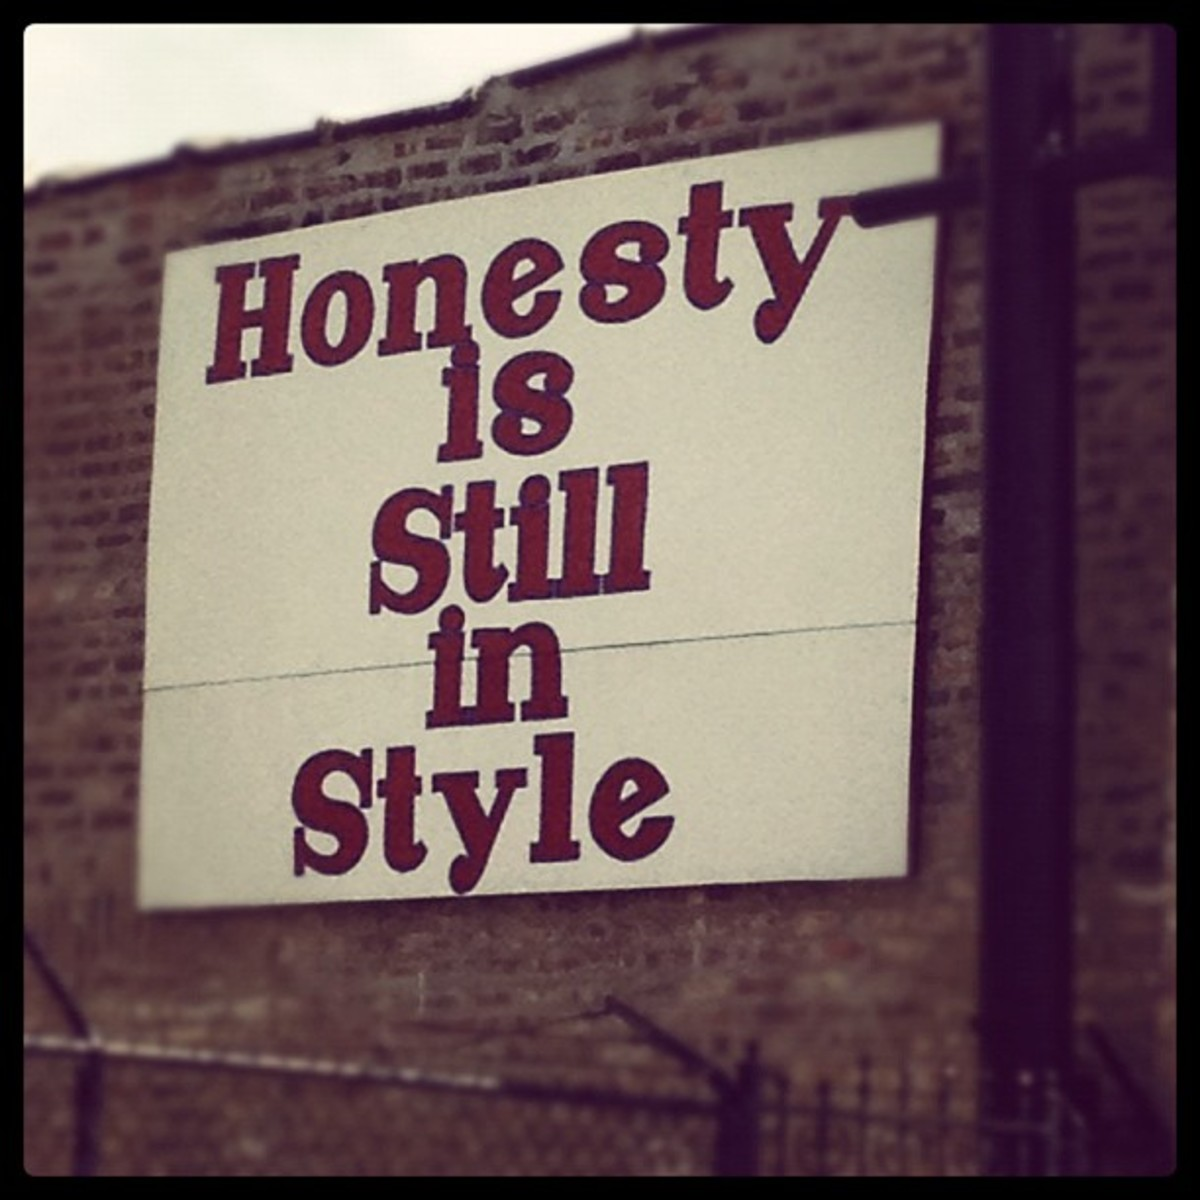 36 Songs About Honesty, Truth, and Integrity | Spinditty